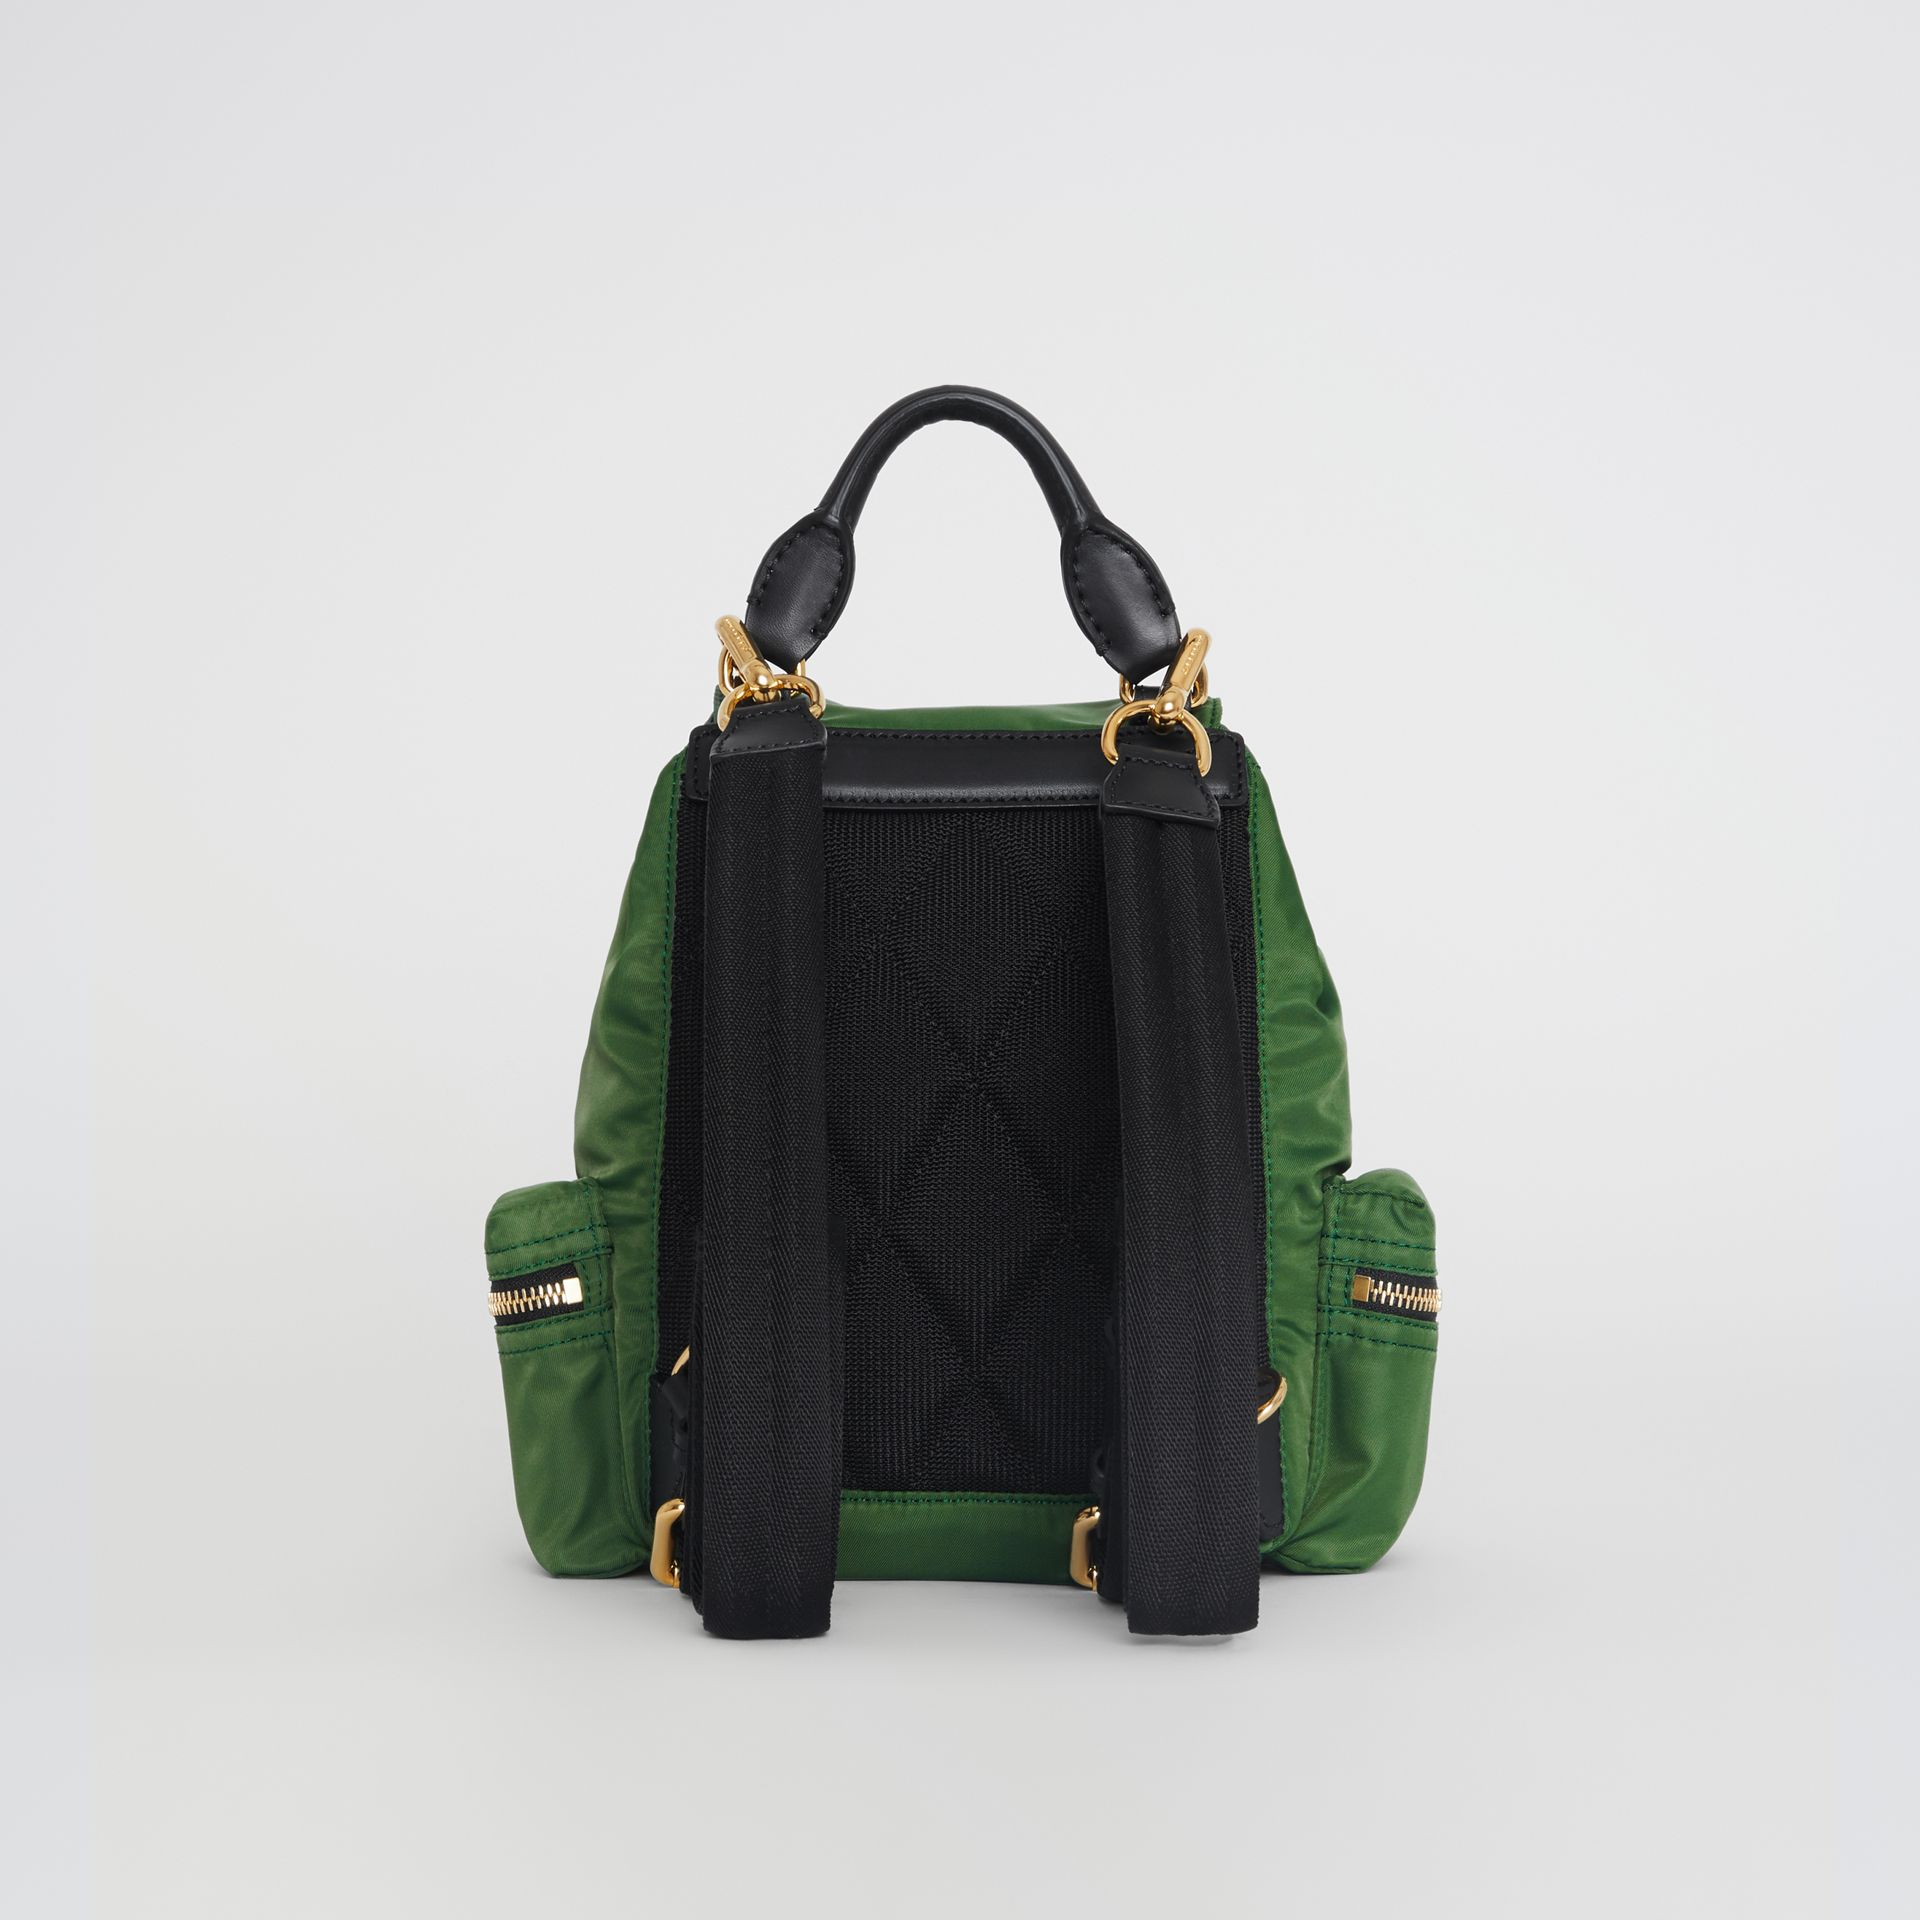 The Small Crossbody Rucksack in Nylon in Racing Green - Women | Burberry United States - gallery image 8